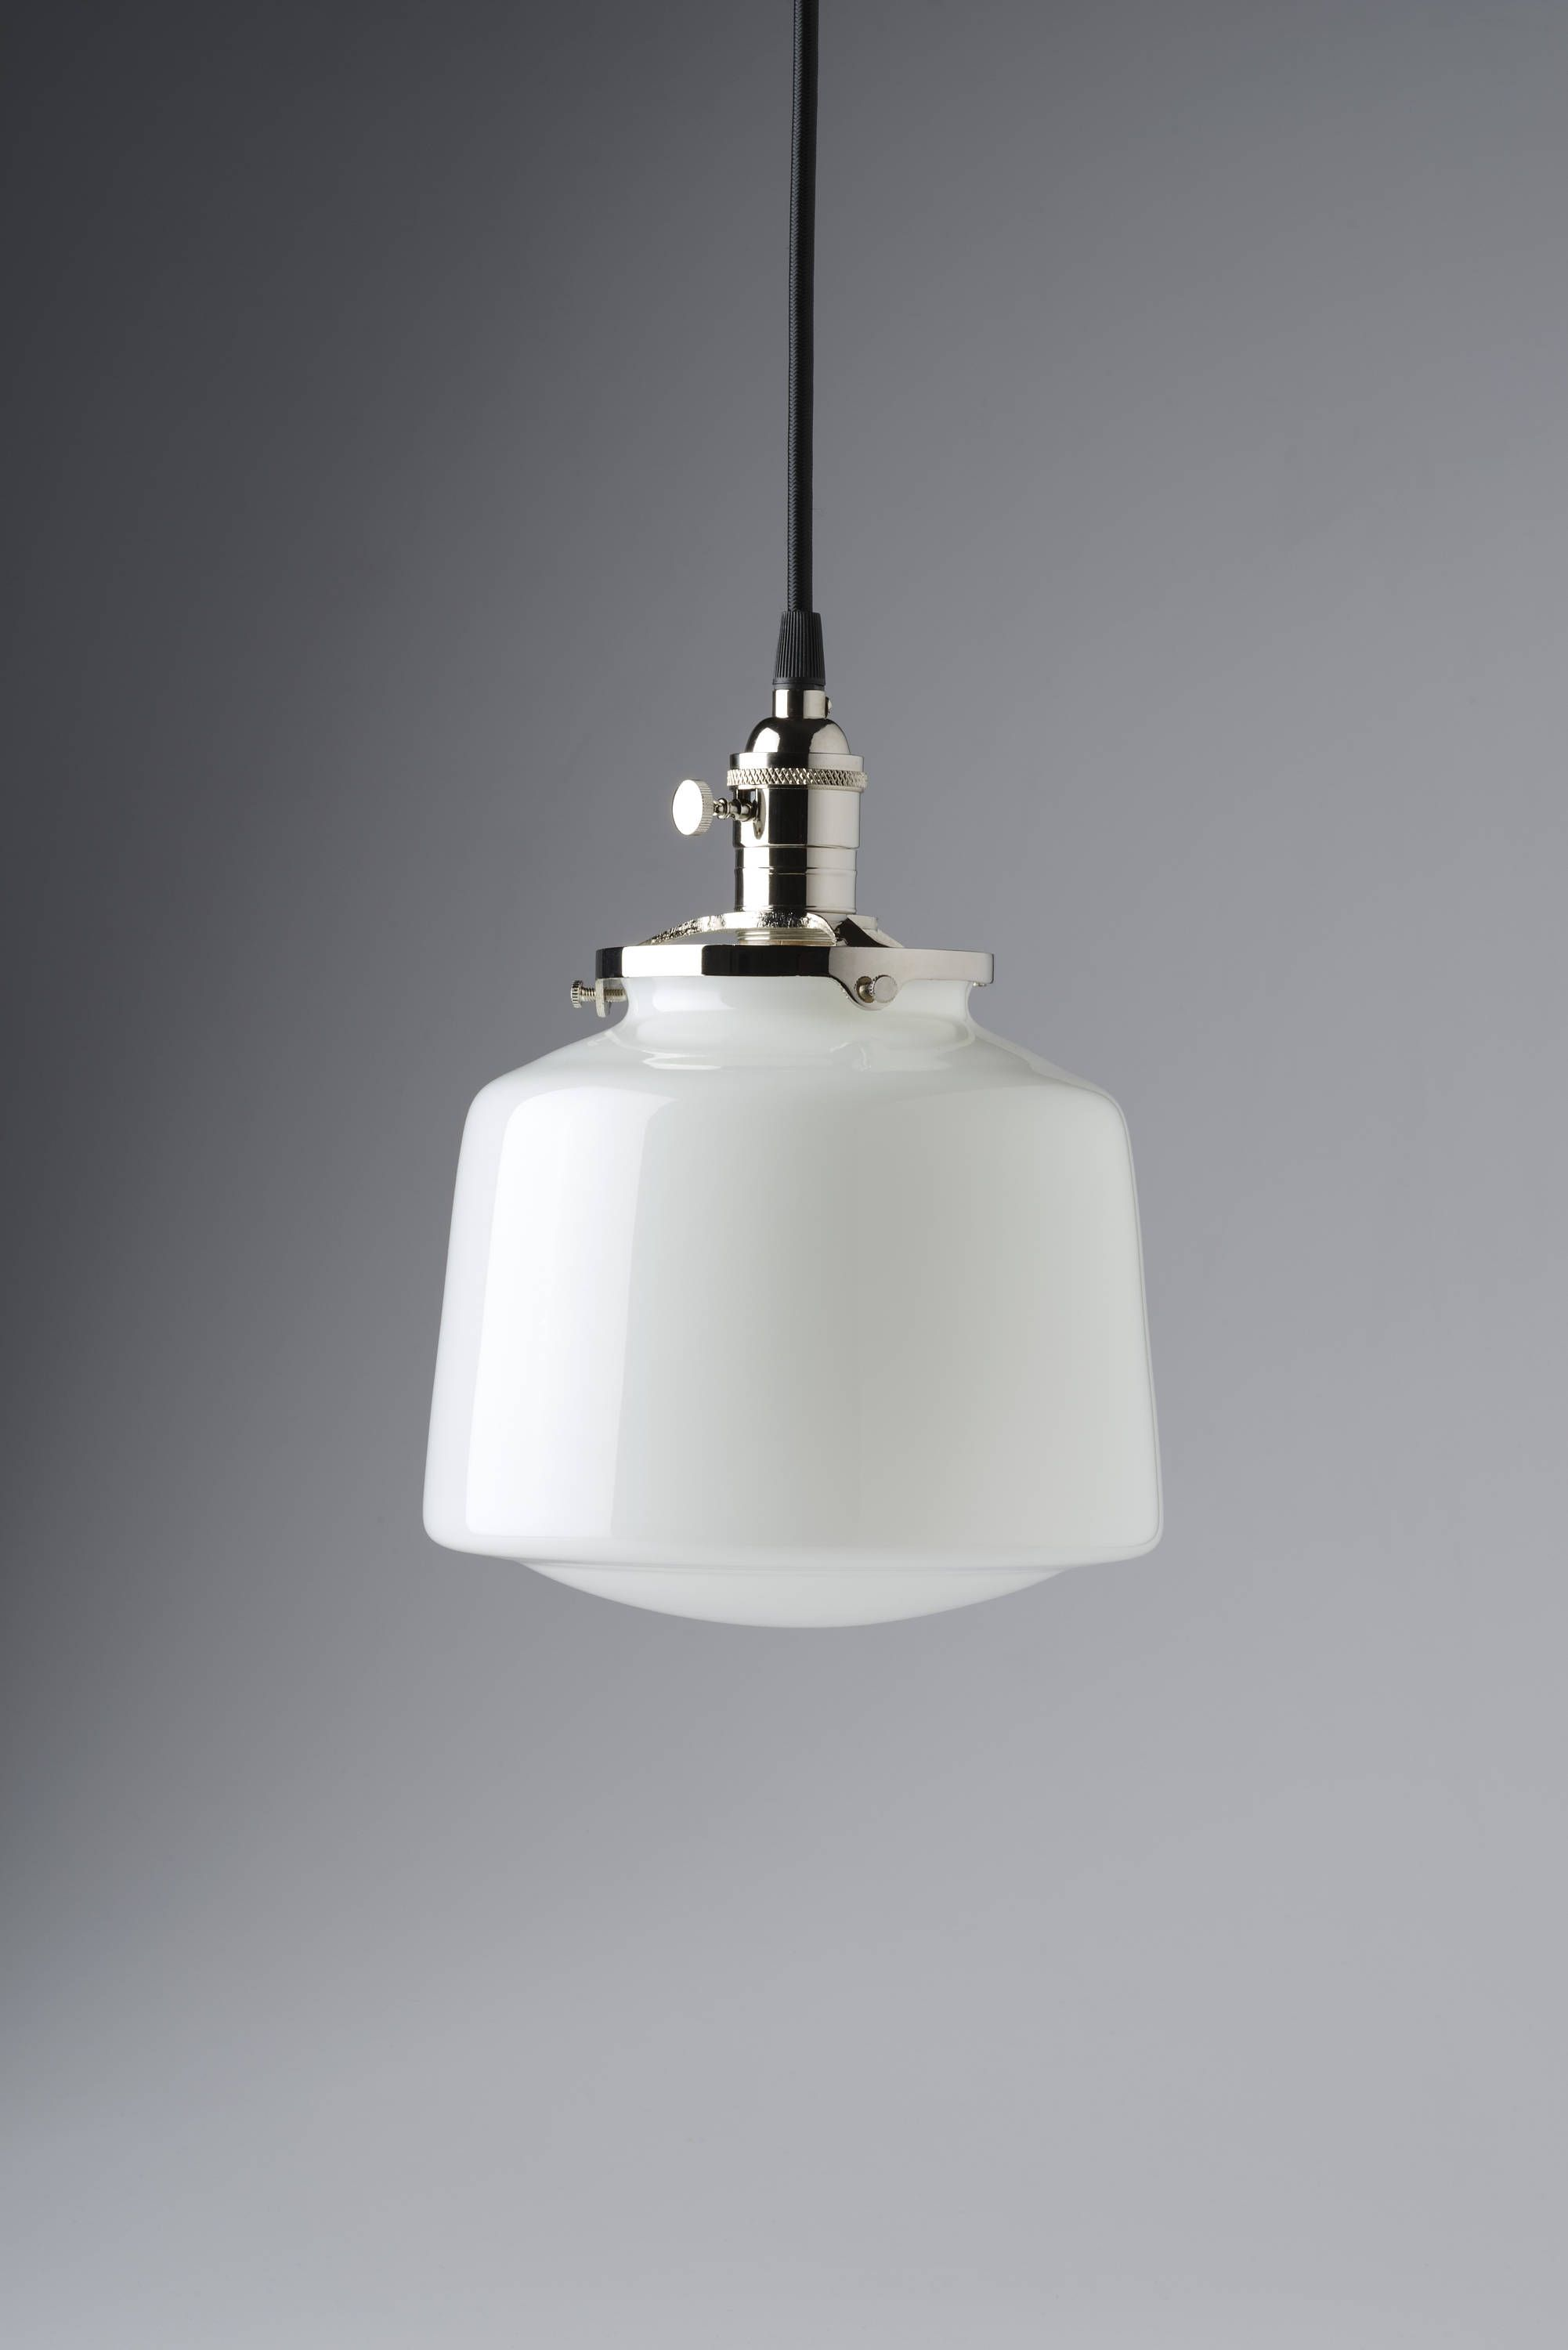 School House Pendant Light White Glass Globe Drum Style Fixture ...